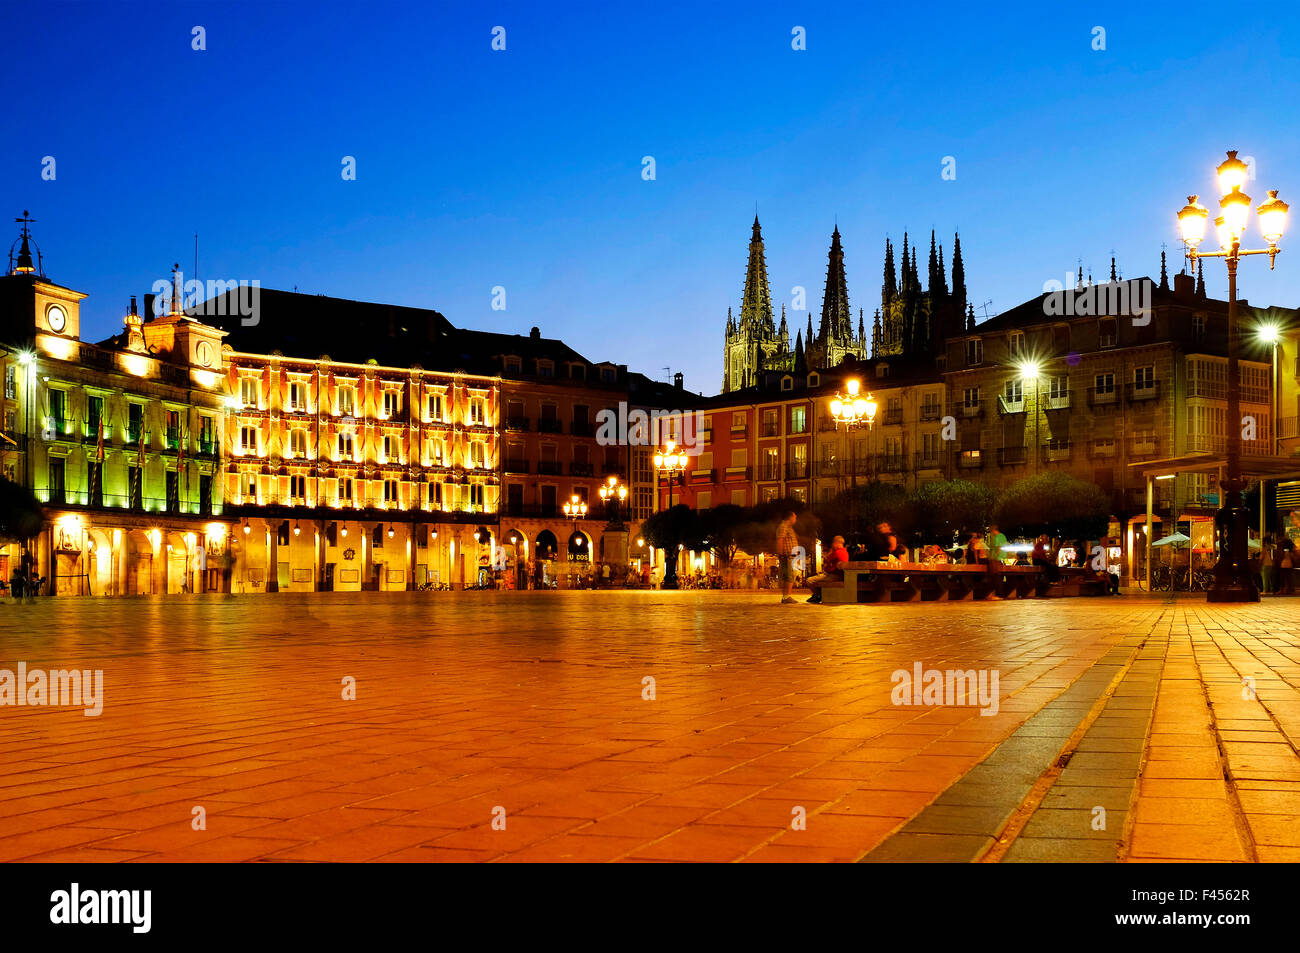 View of Plaza Mayor, Burgos, Castile and León, Spain - Stock Image